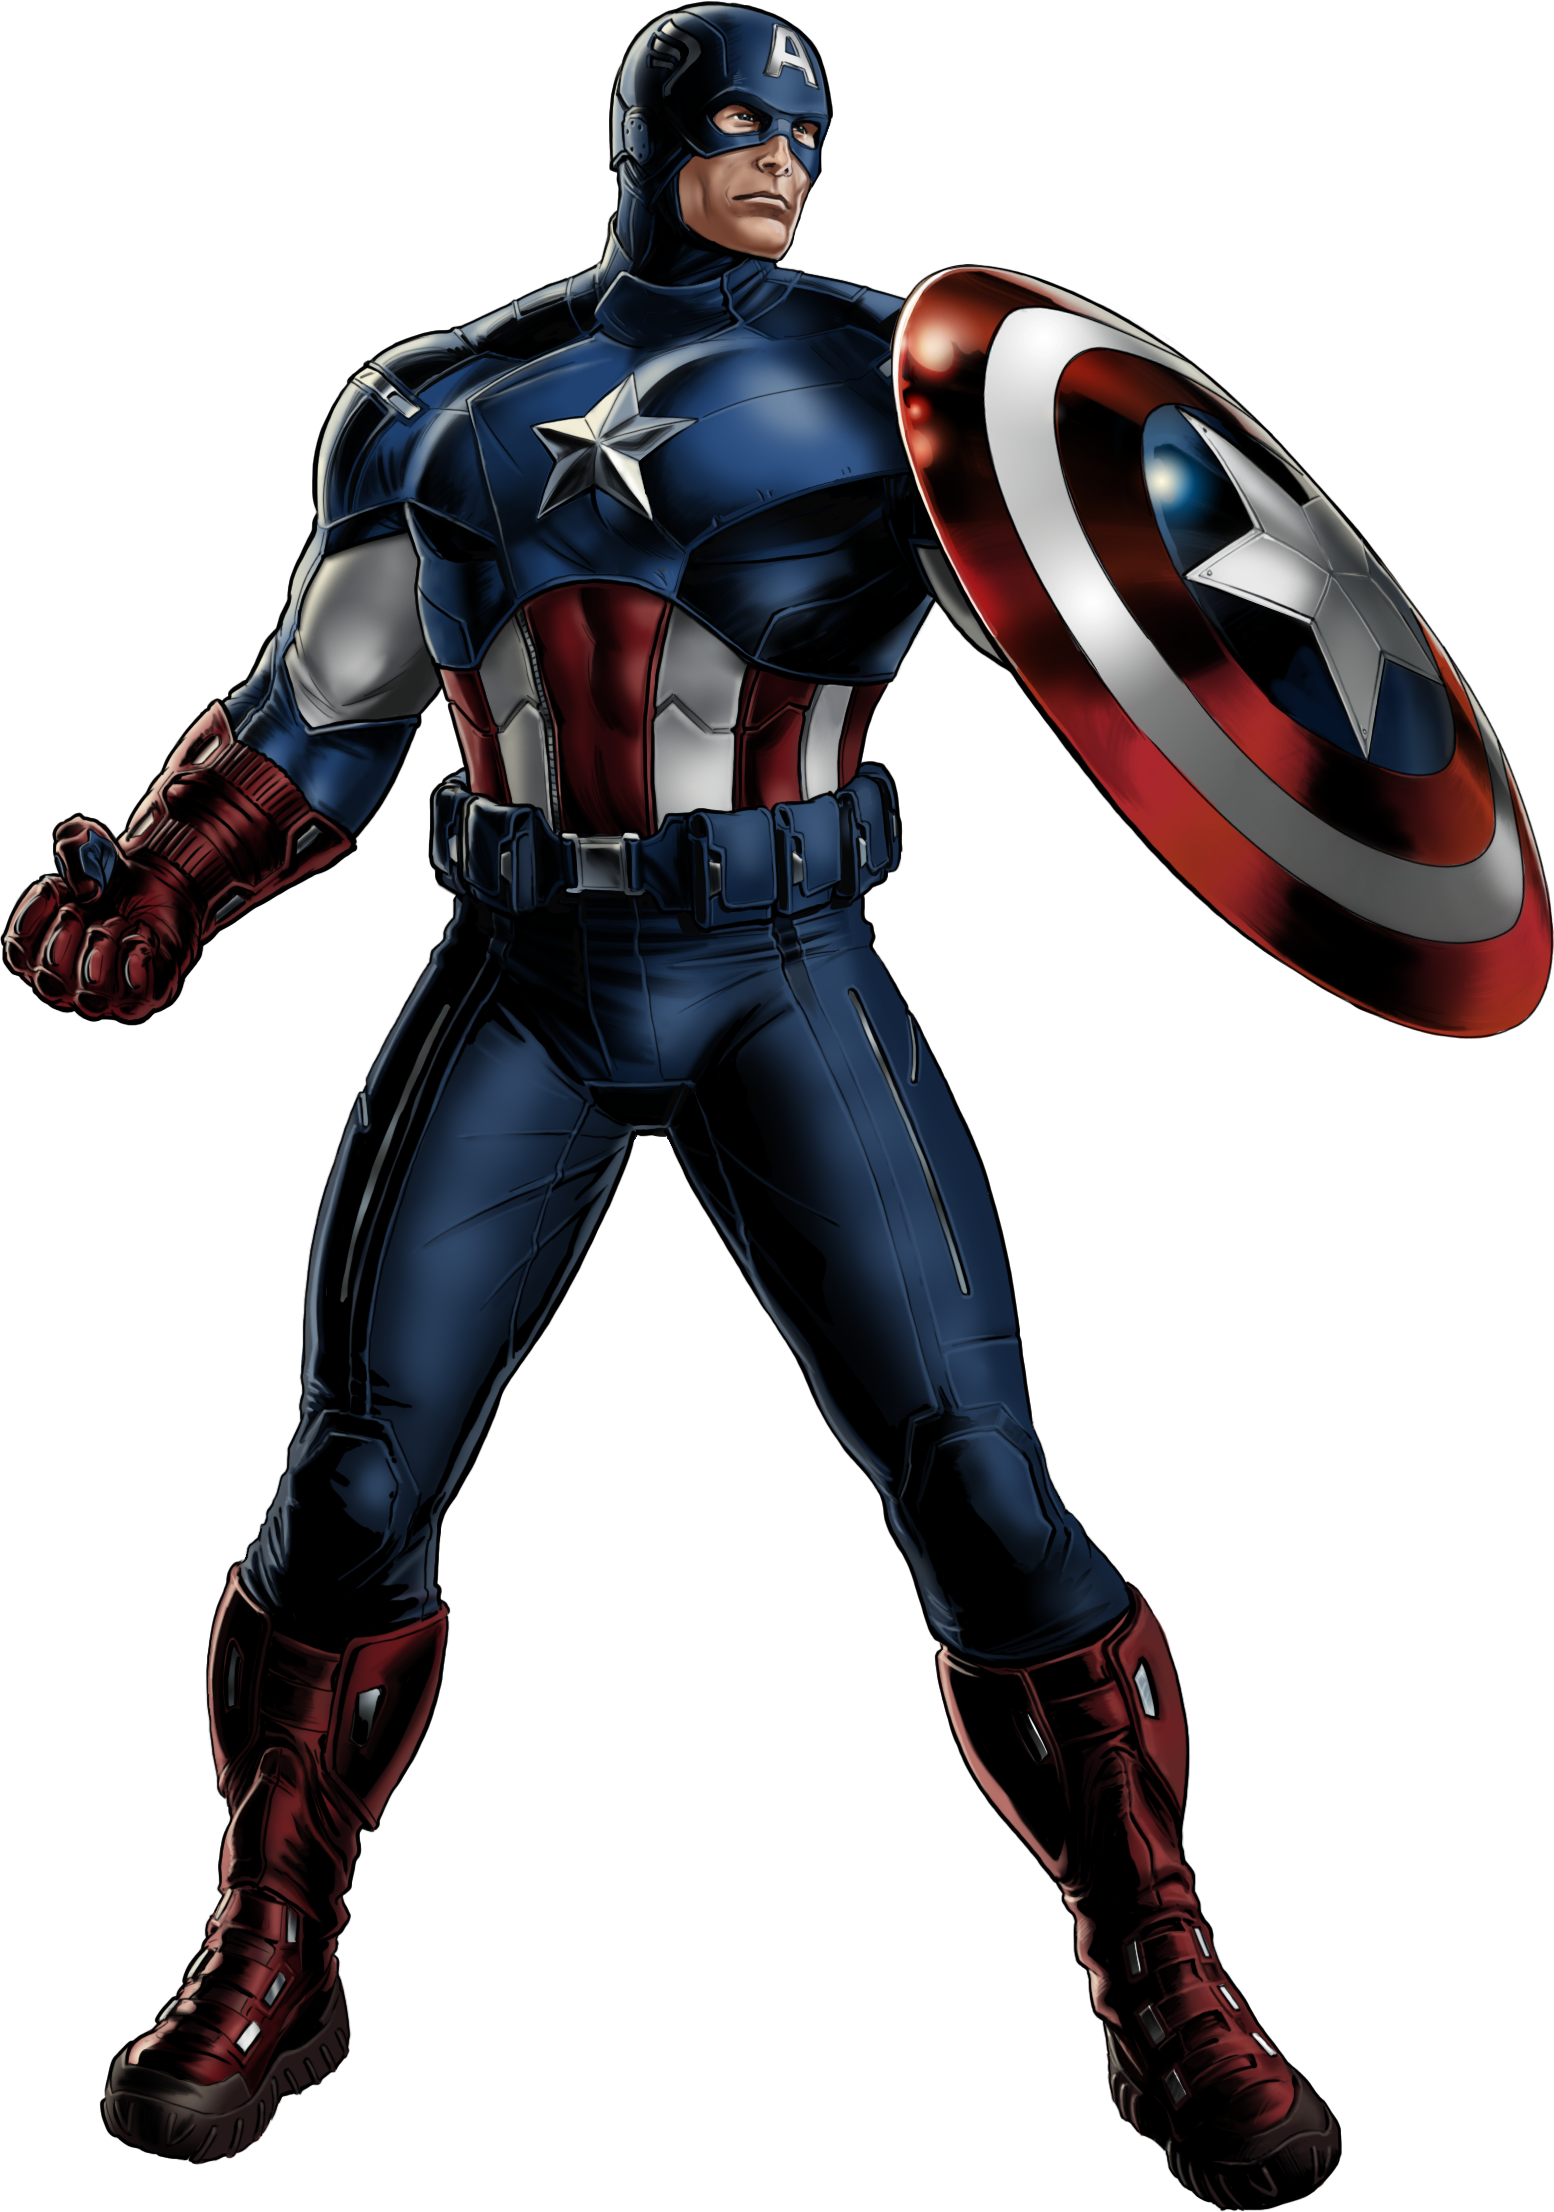 capitan america png hd - Buscar con Google - Avengers PNG